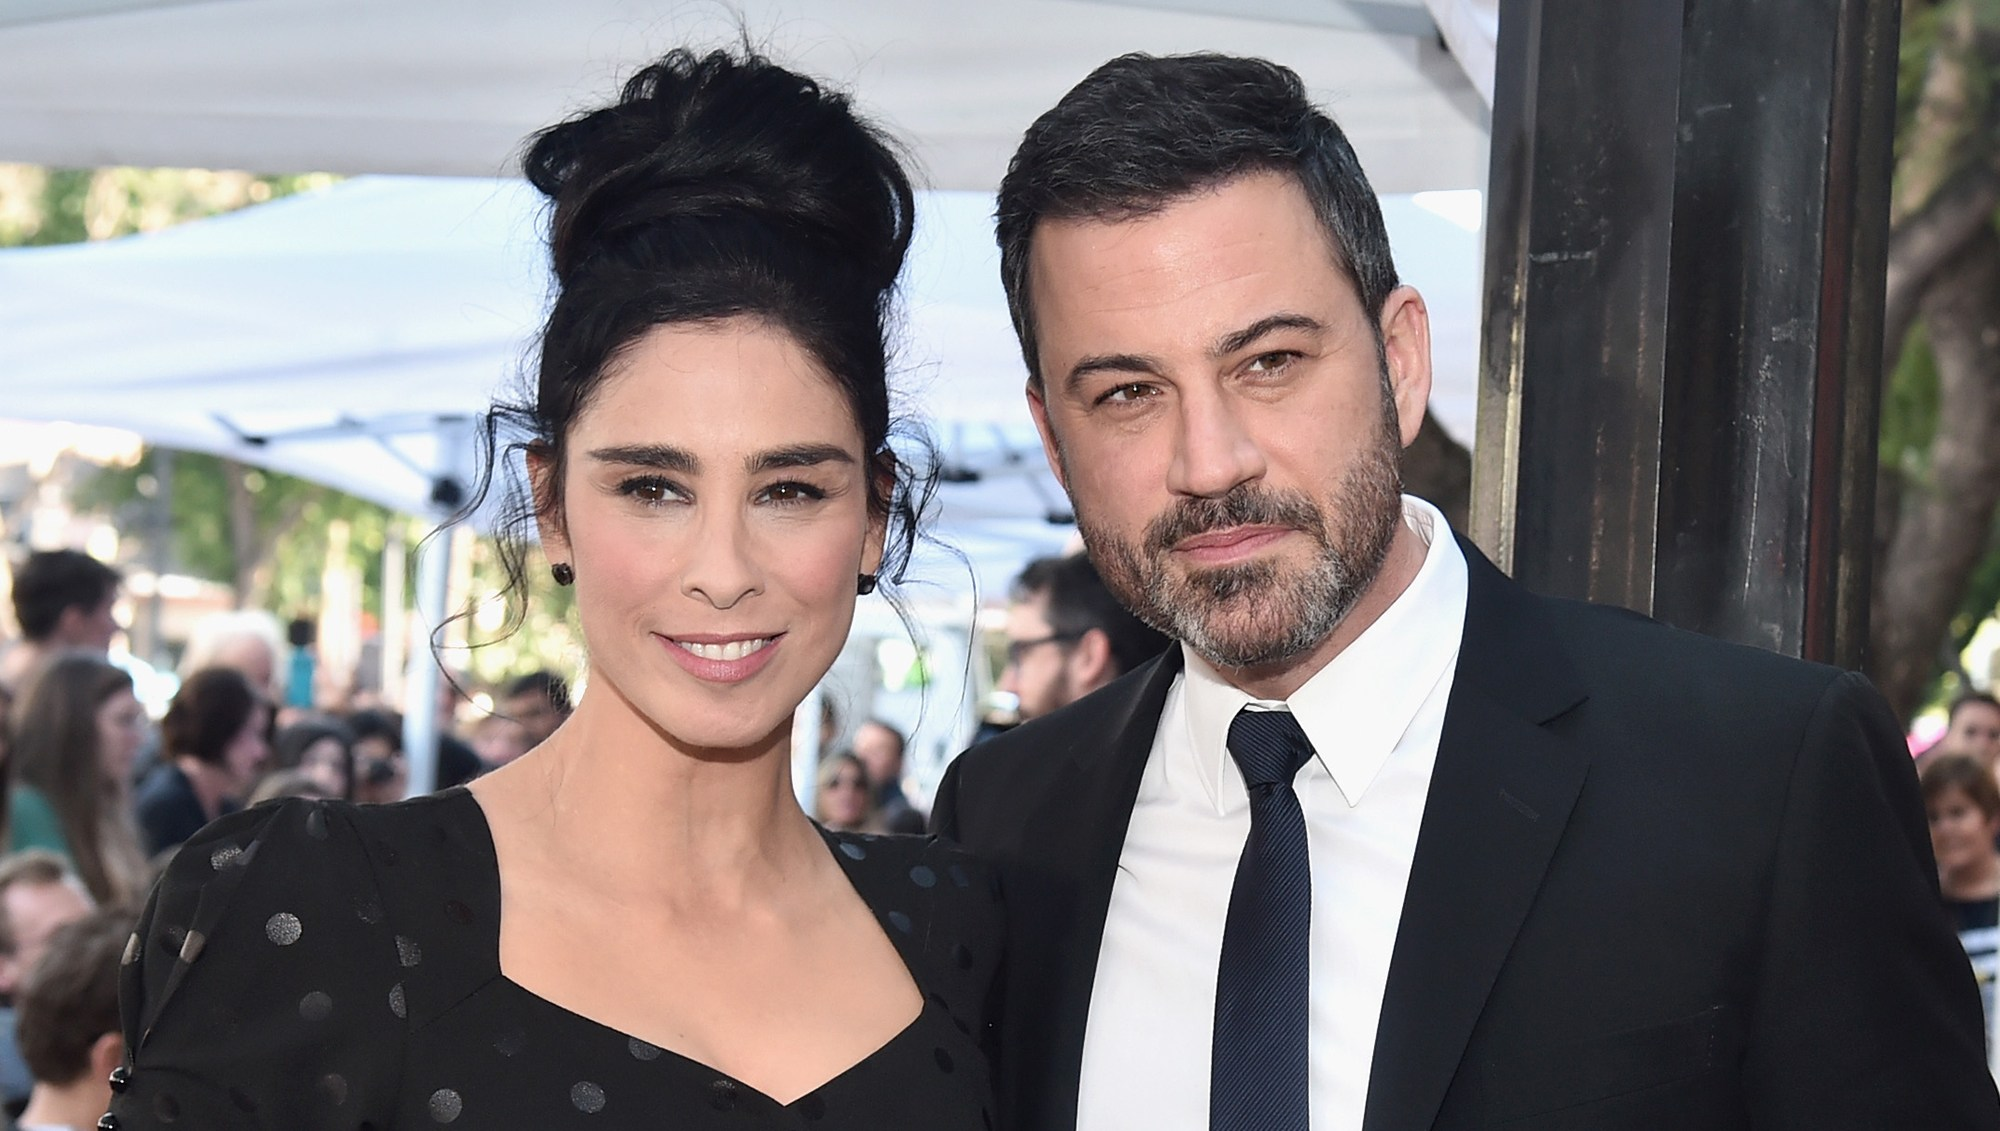 Jimmy Kimmel Says Friendship With Ex Sarah Silverman 'Definitely Took Some Time'